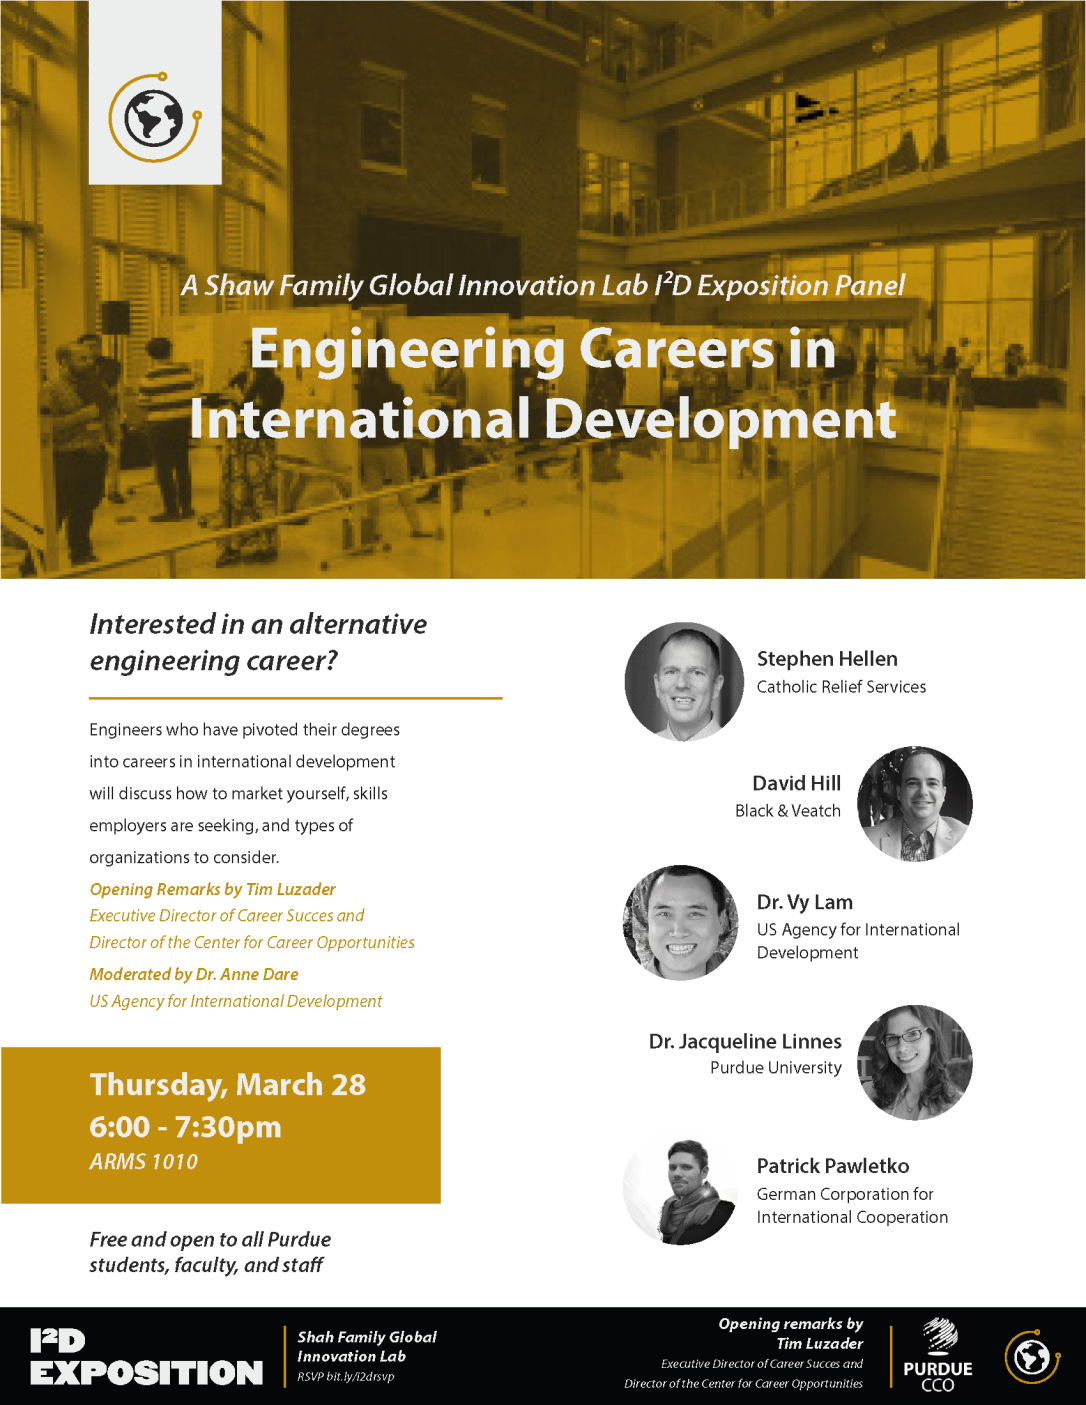 Engineering Careers in International Development Flyer V2_01